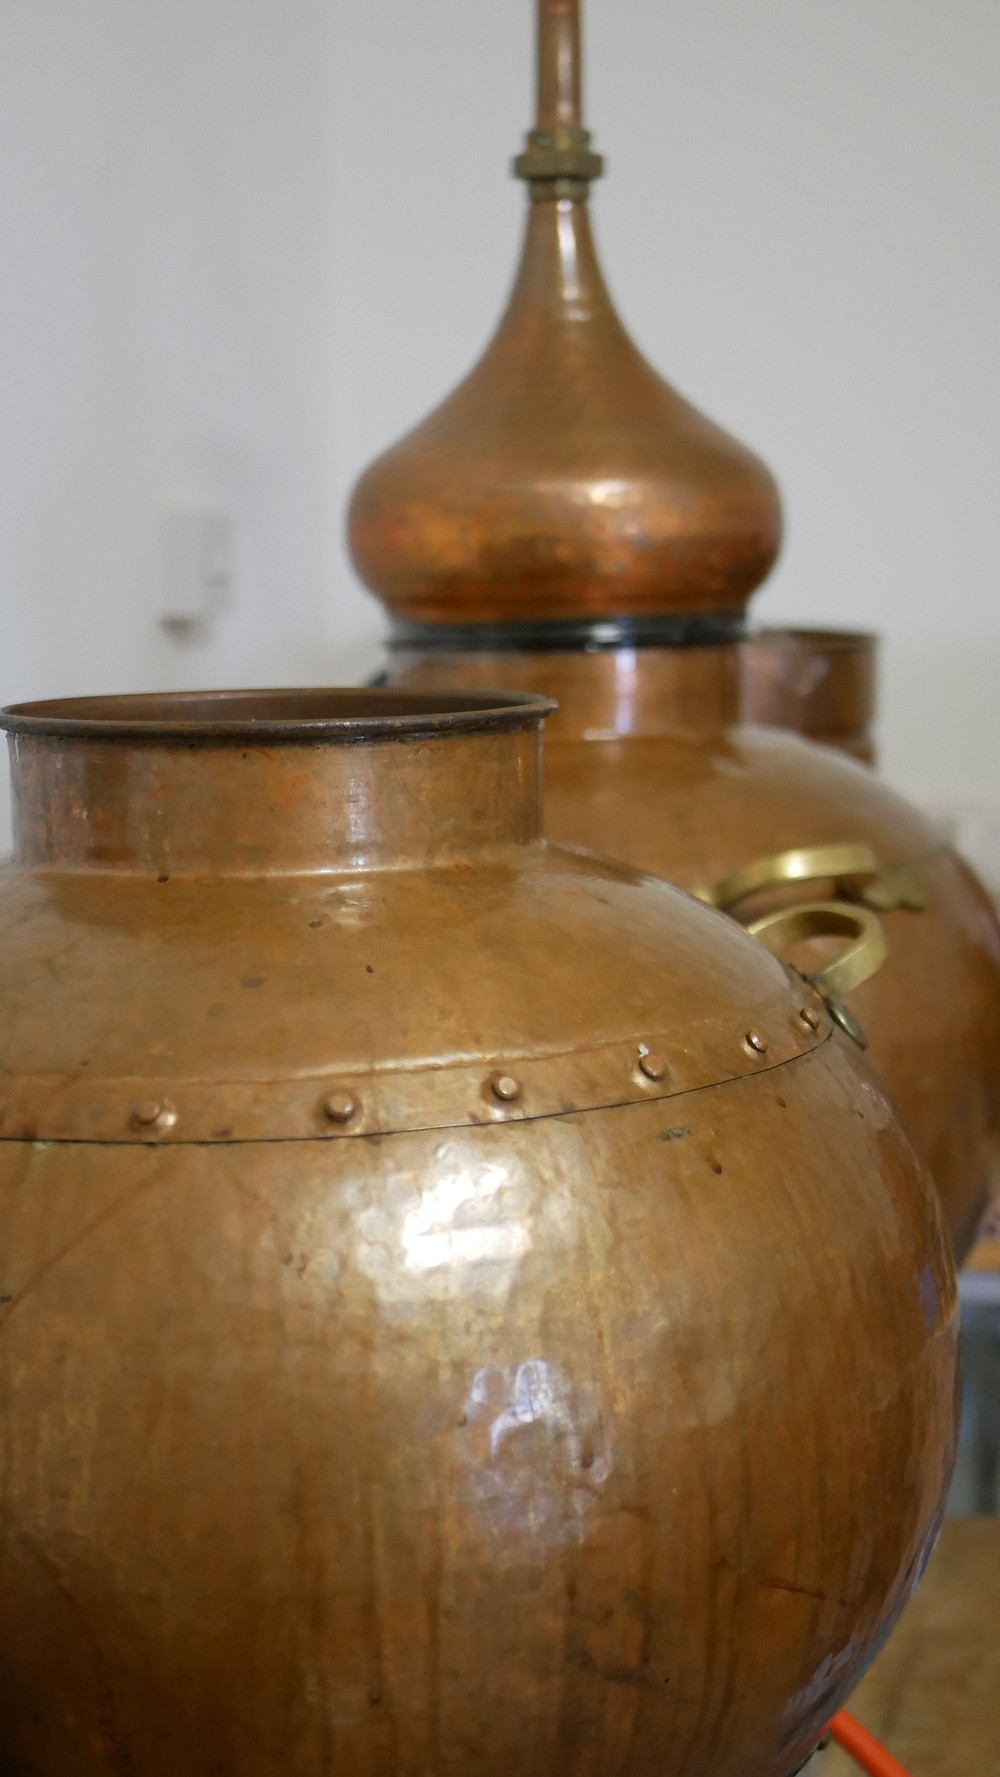 Pothecary Gin - Copper stills